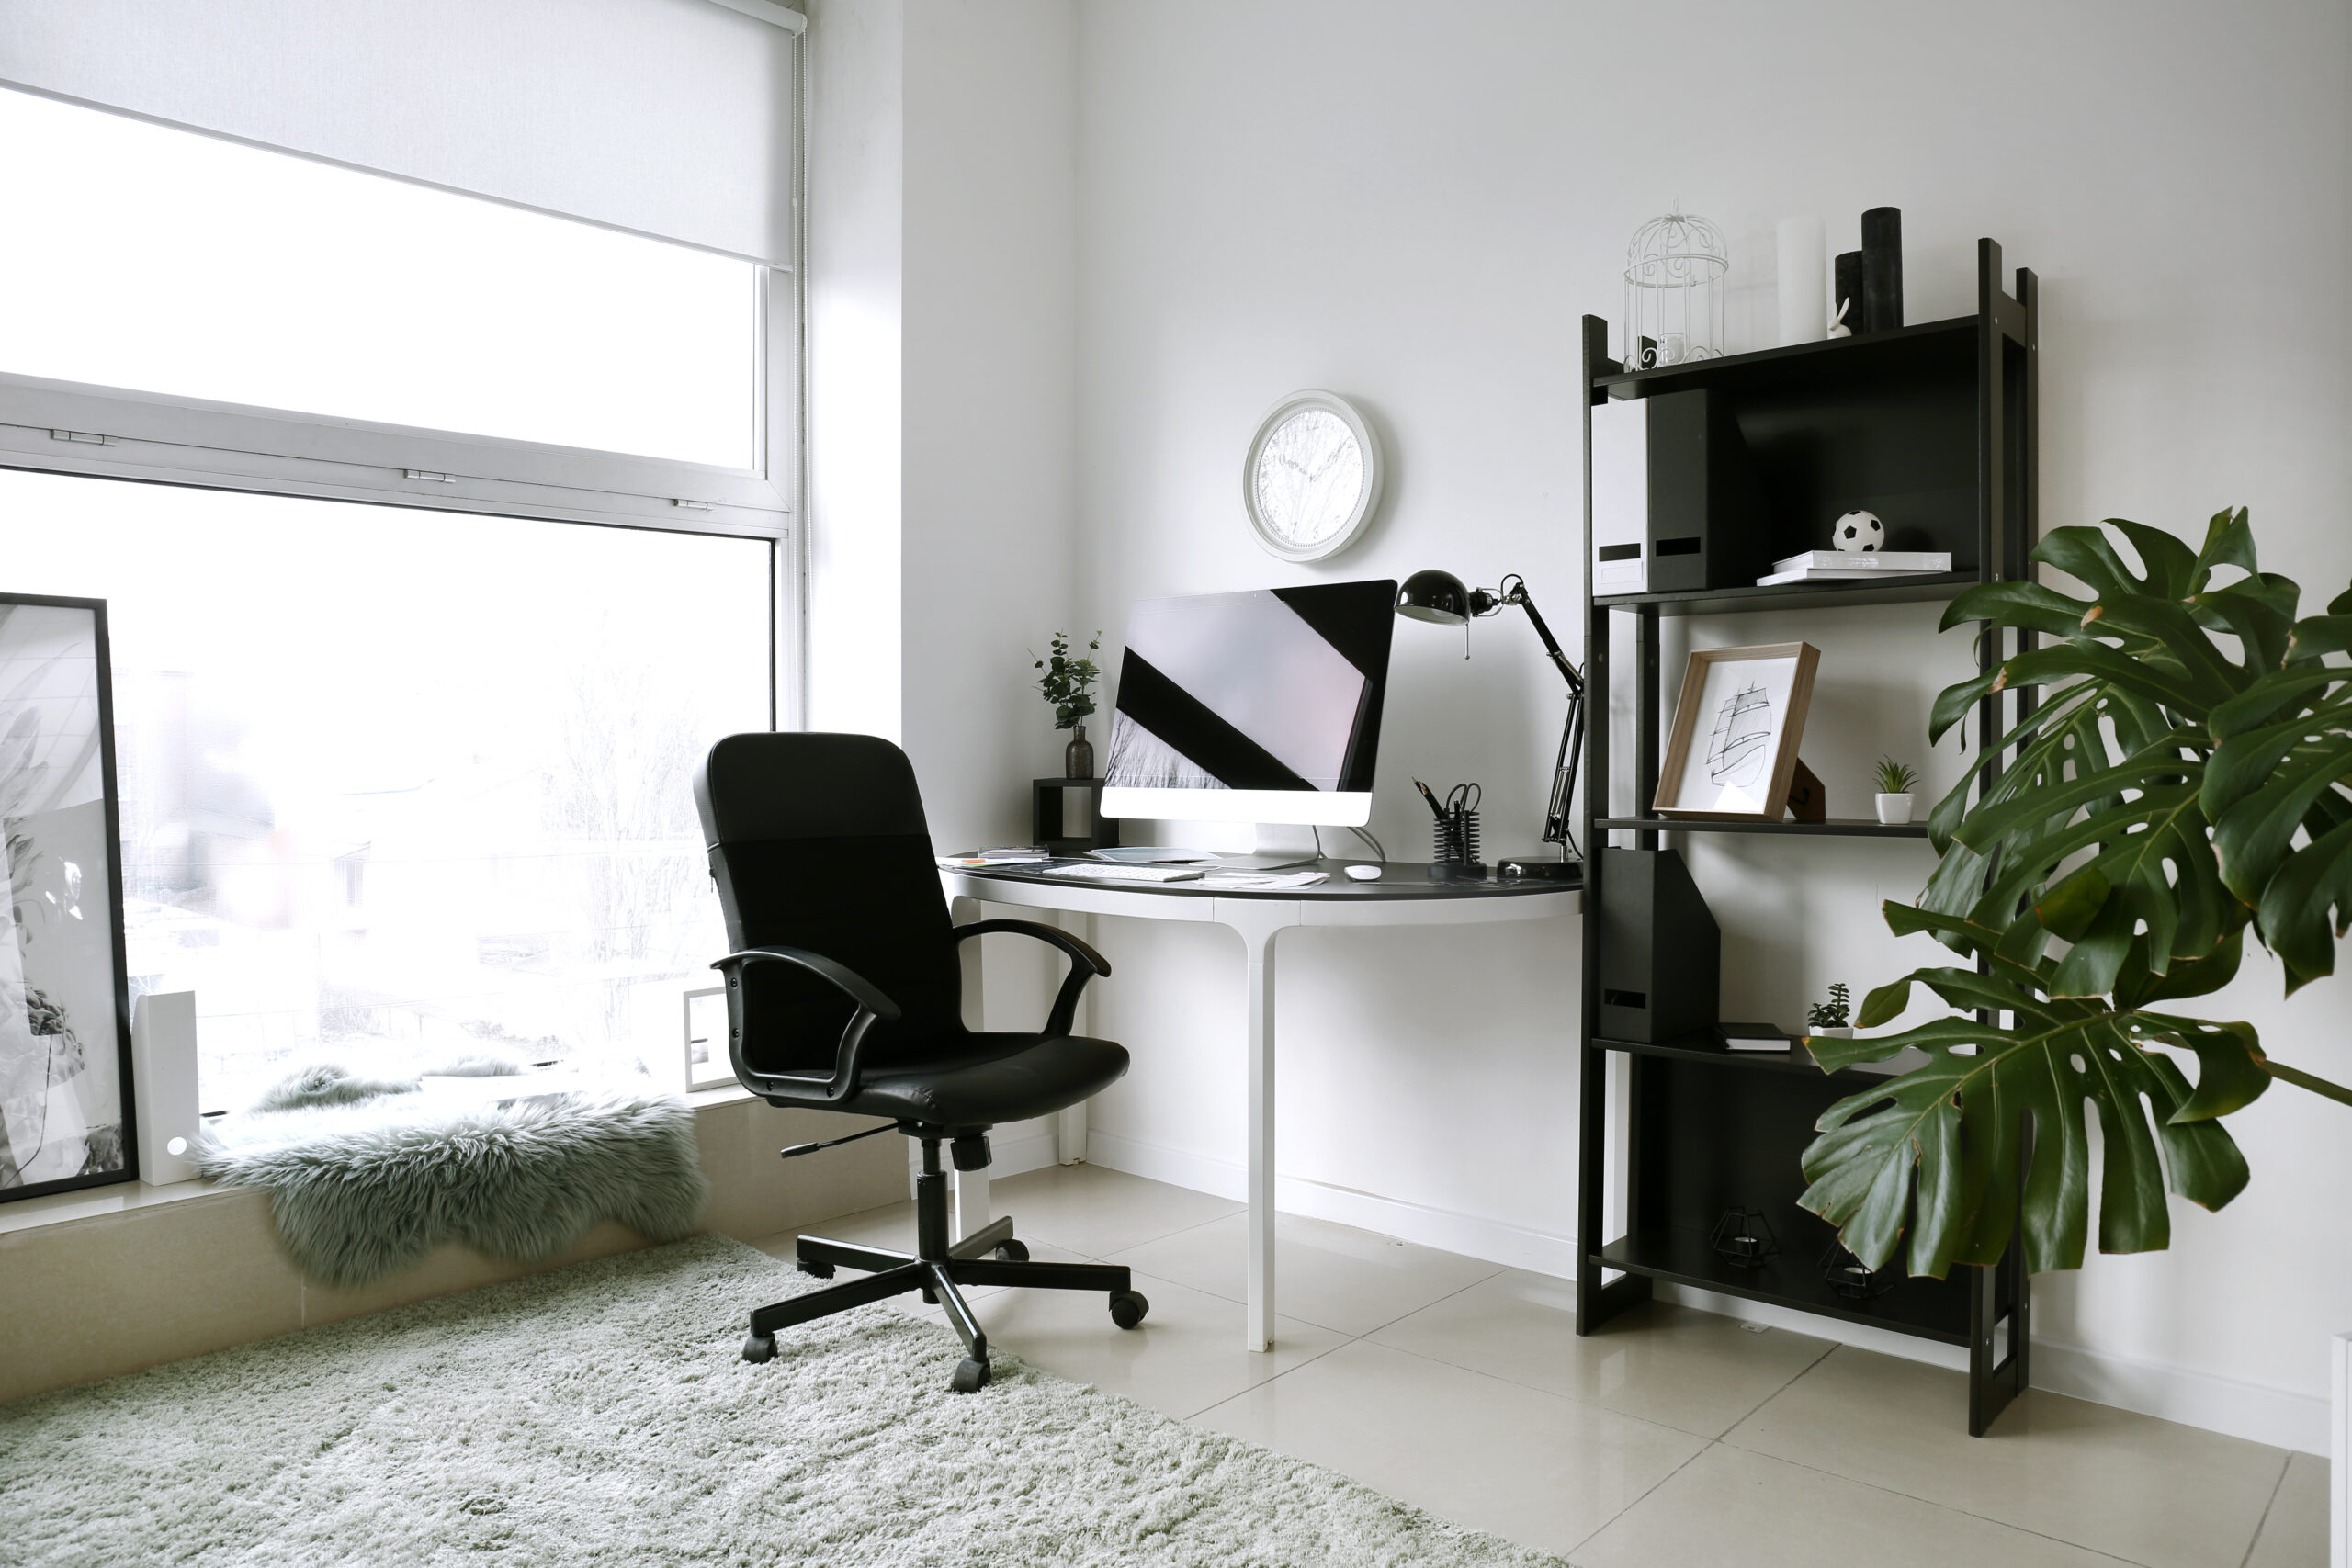 Interior,Of,Room,With,Comfortable,Designer,Workplace